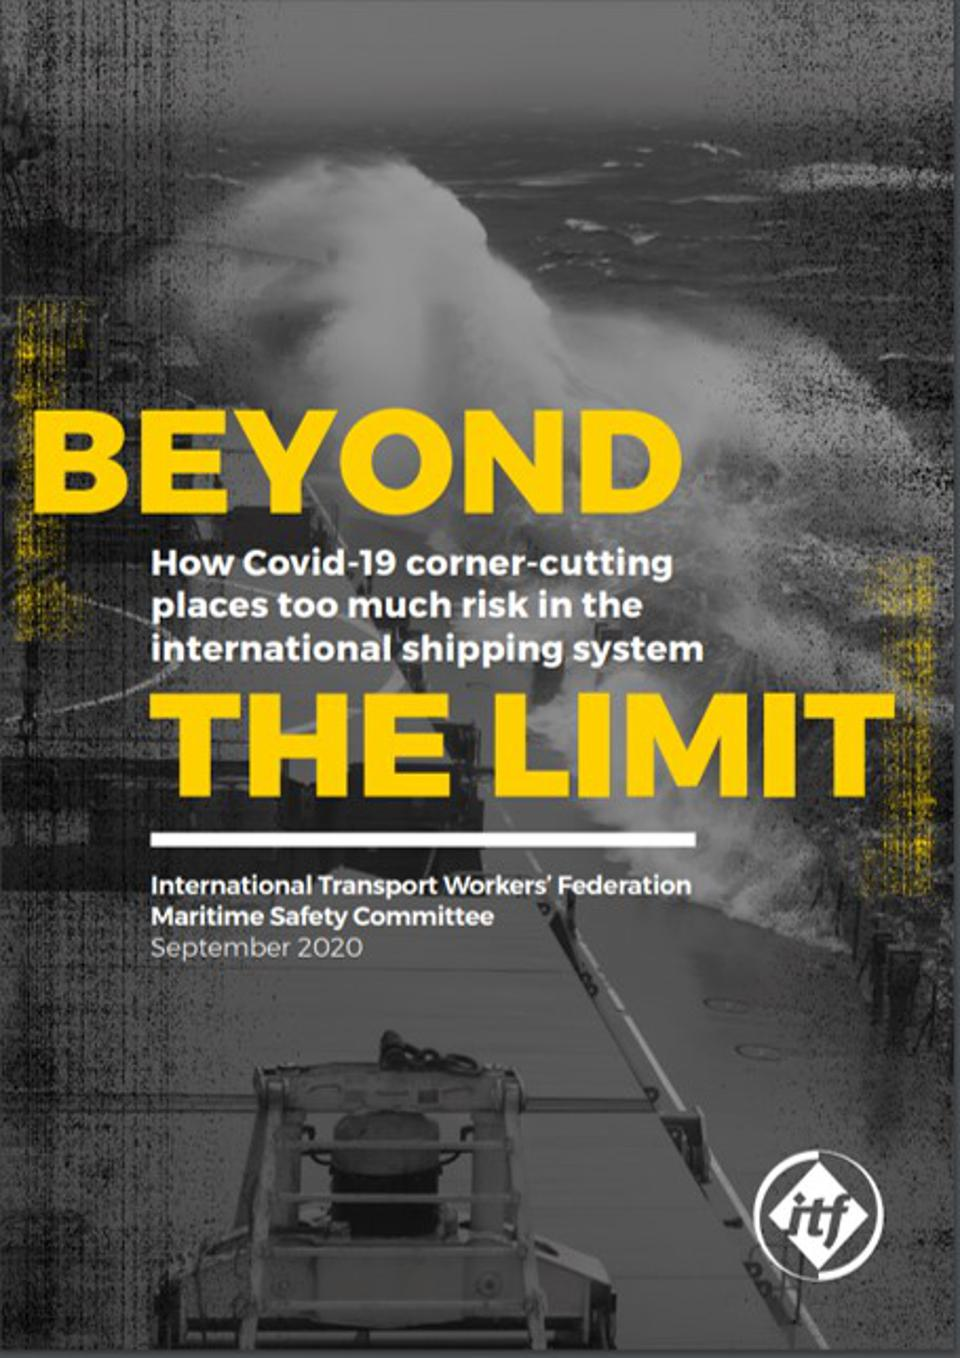 Report from International Transport Workers Federation highlighting the risk that global shipping poses to the world due to unsafe manning levels on ships internationally.